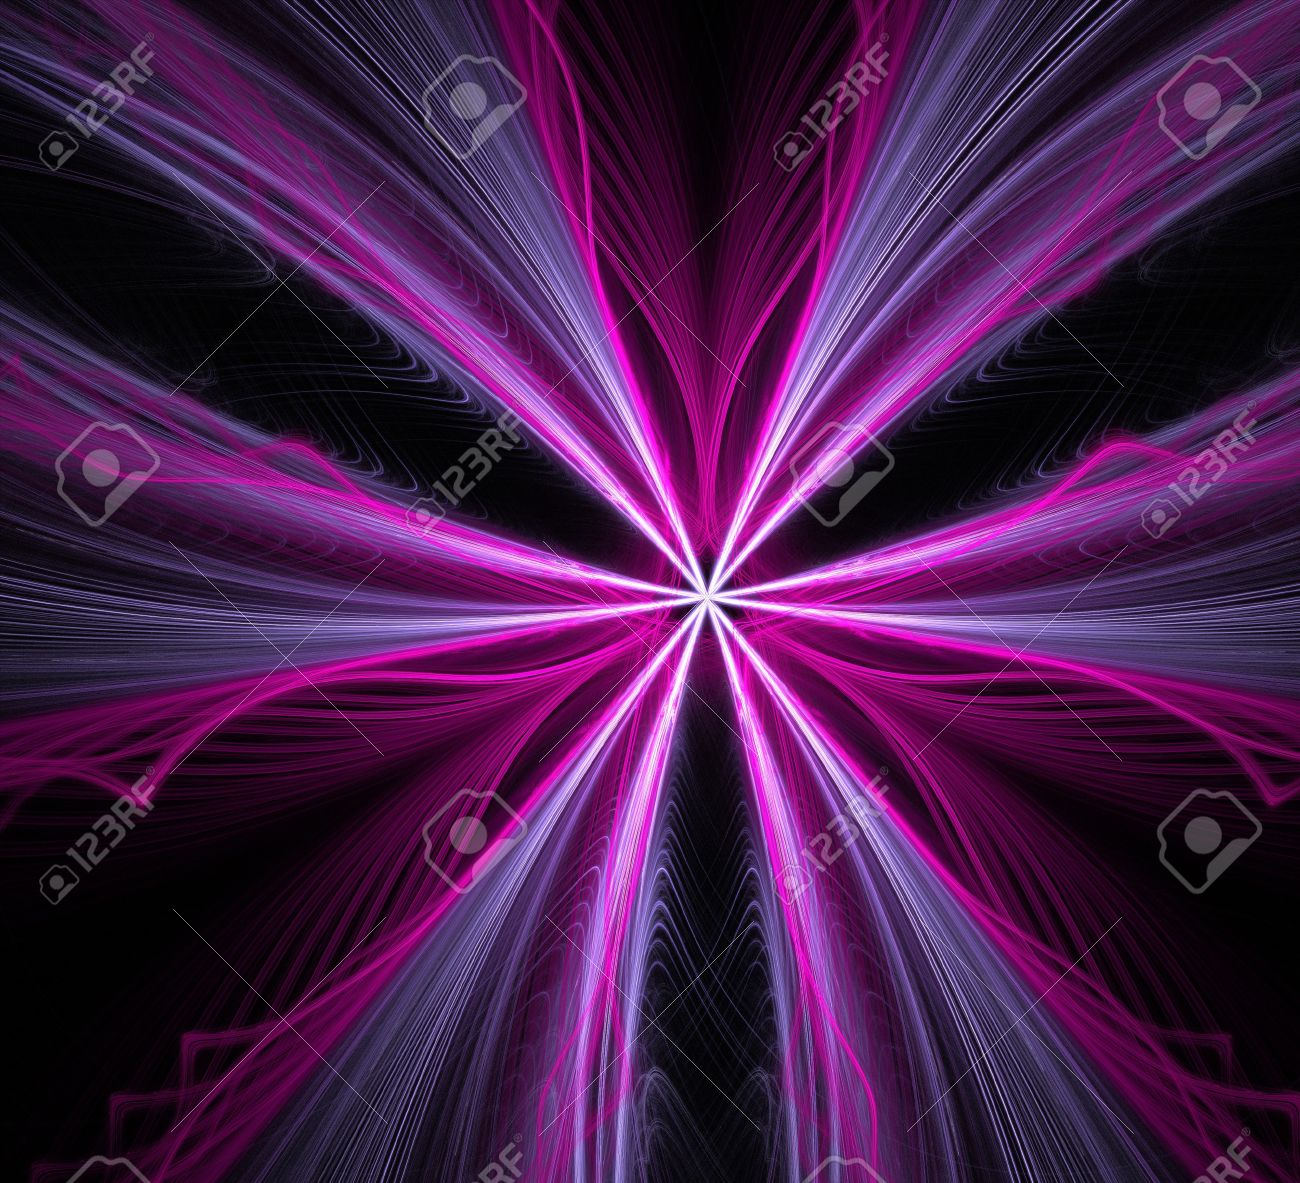 Purple Blue And White Streaks Flaring Outward On A Black Background Fractal Wallpaper With